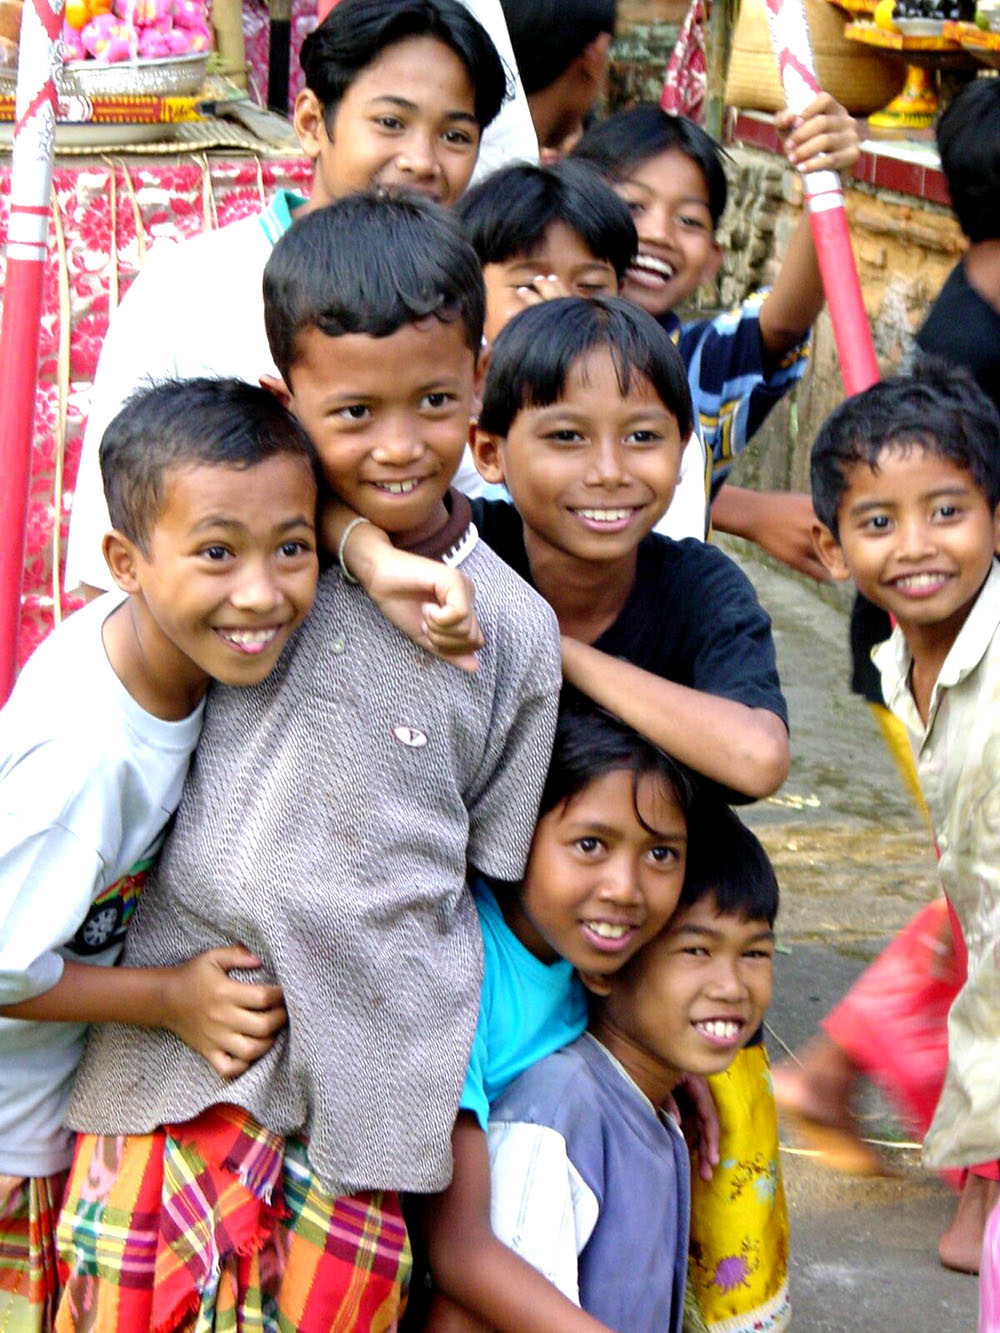 Bali Travels - People Images Page